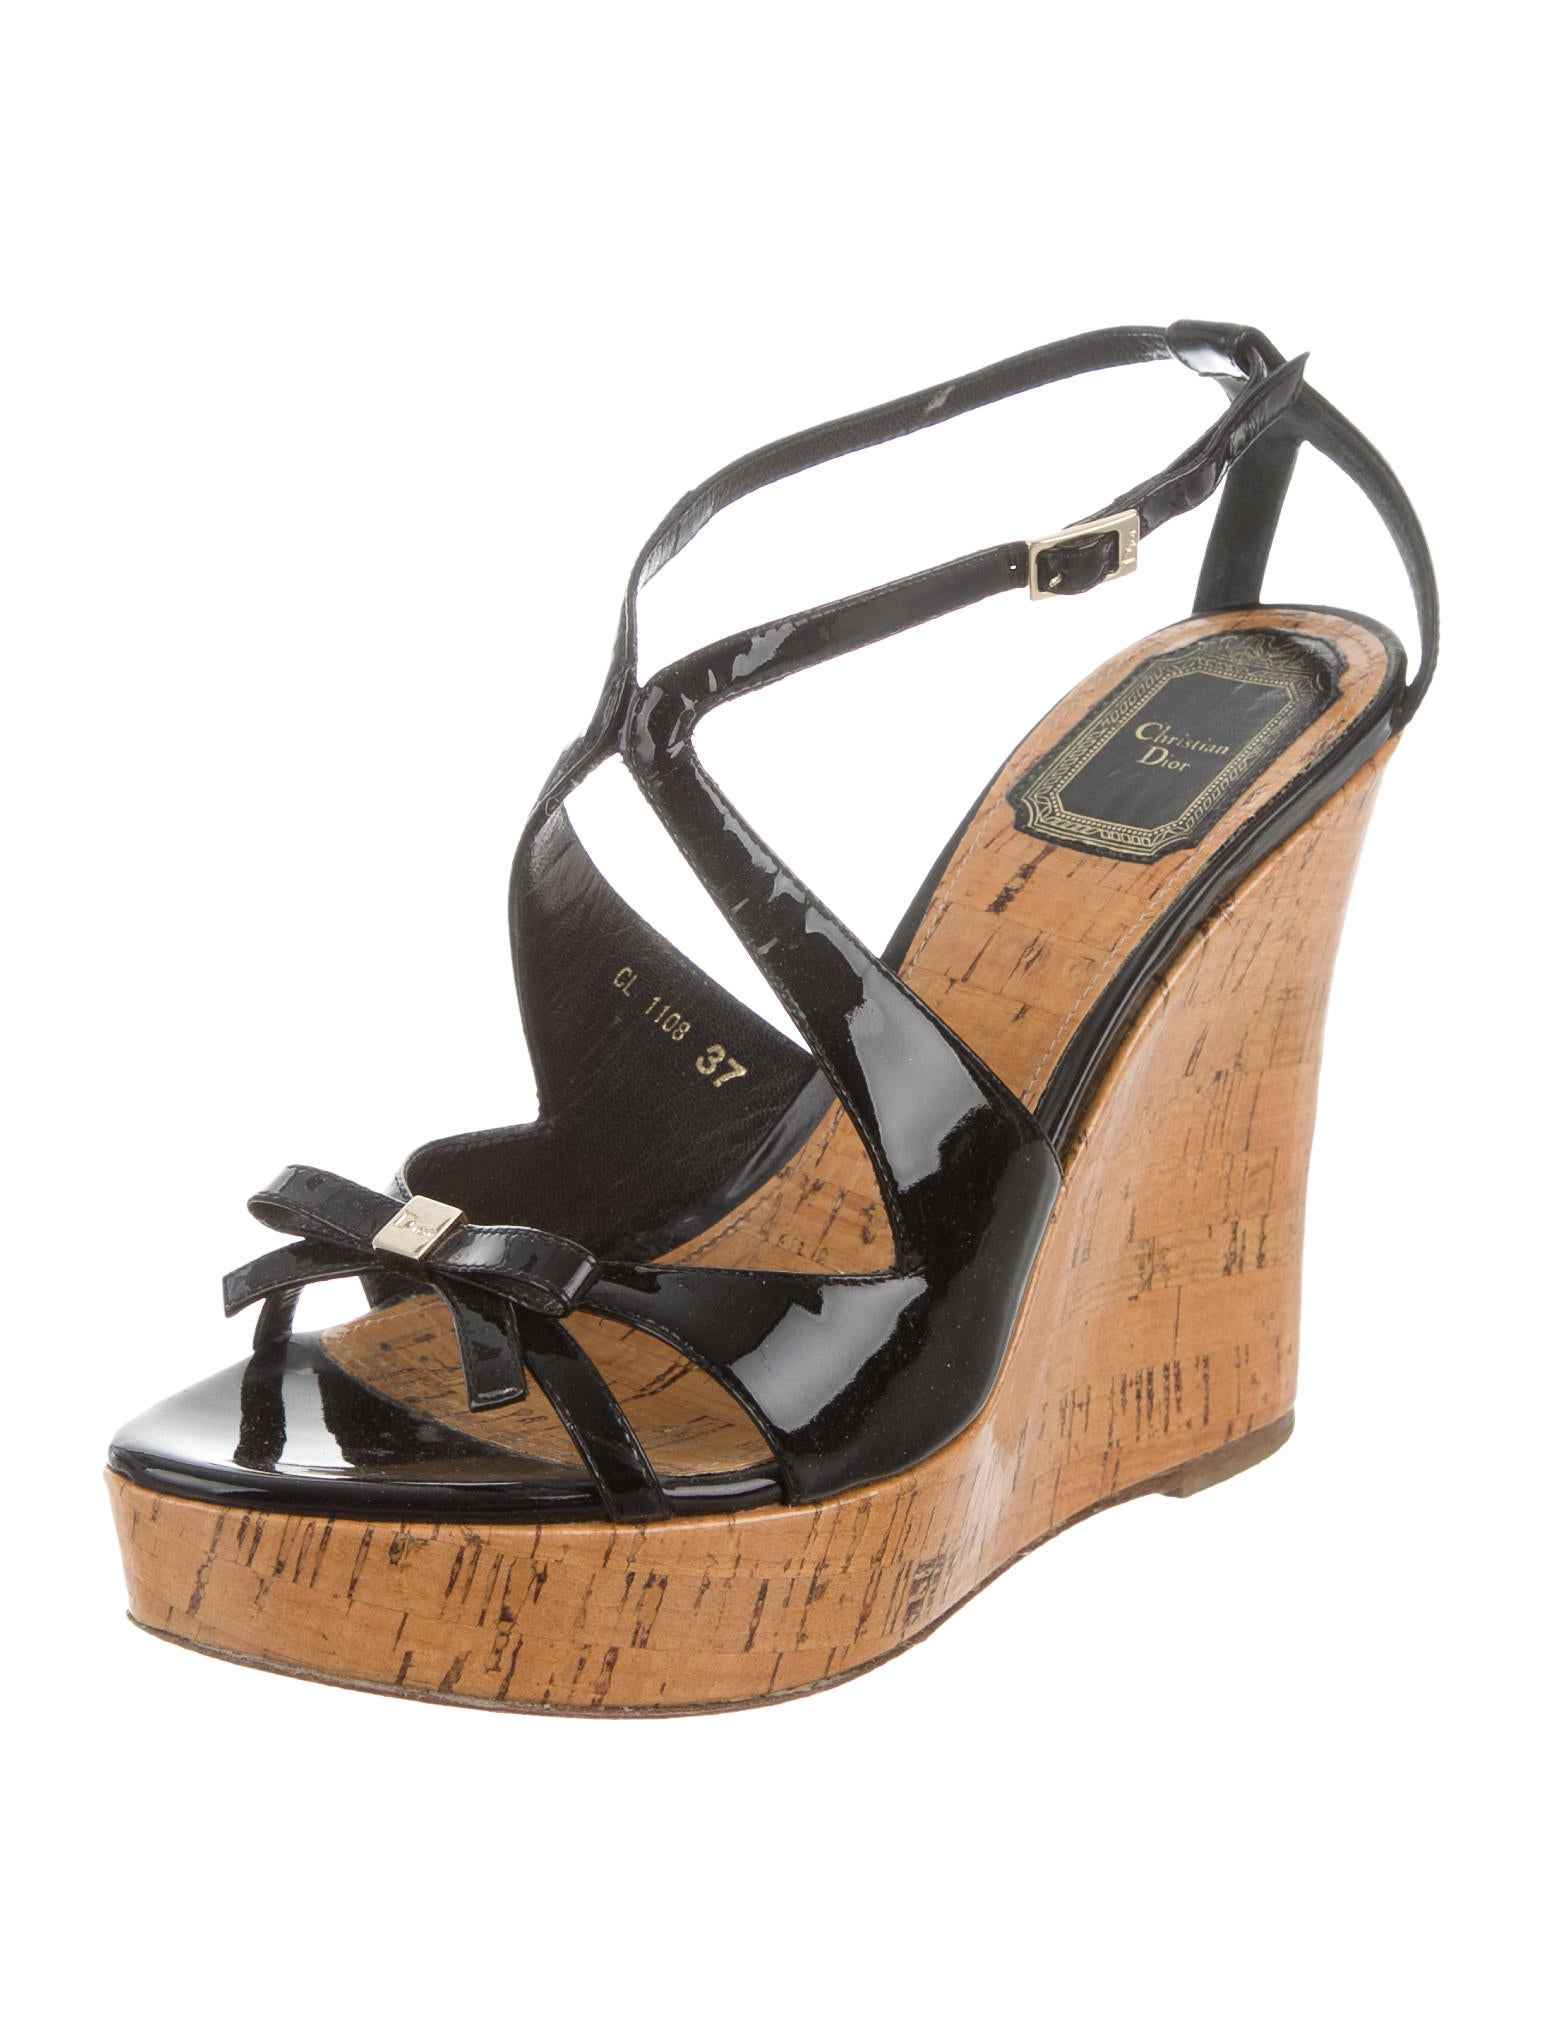 christian patent leather wedge sandals shoes